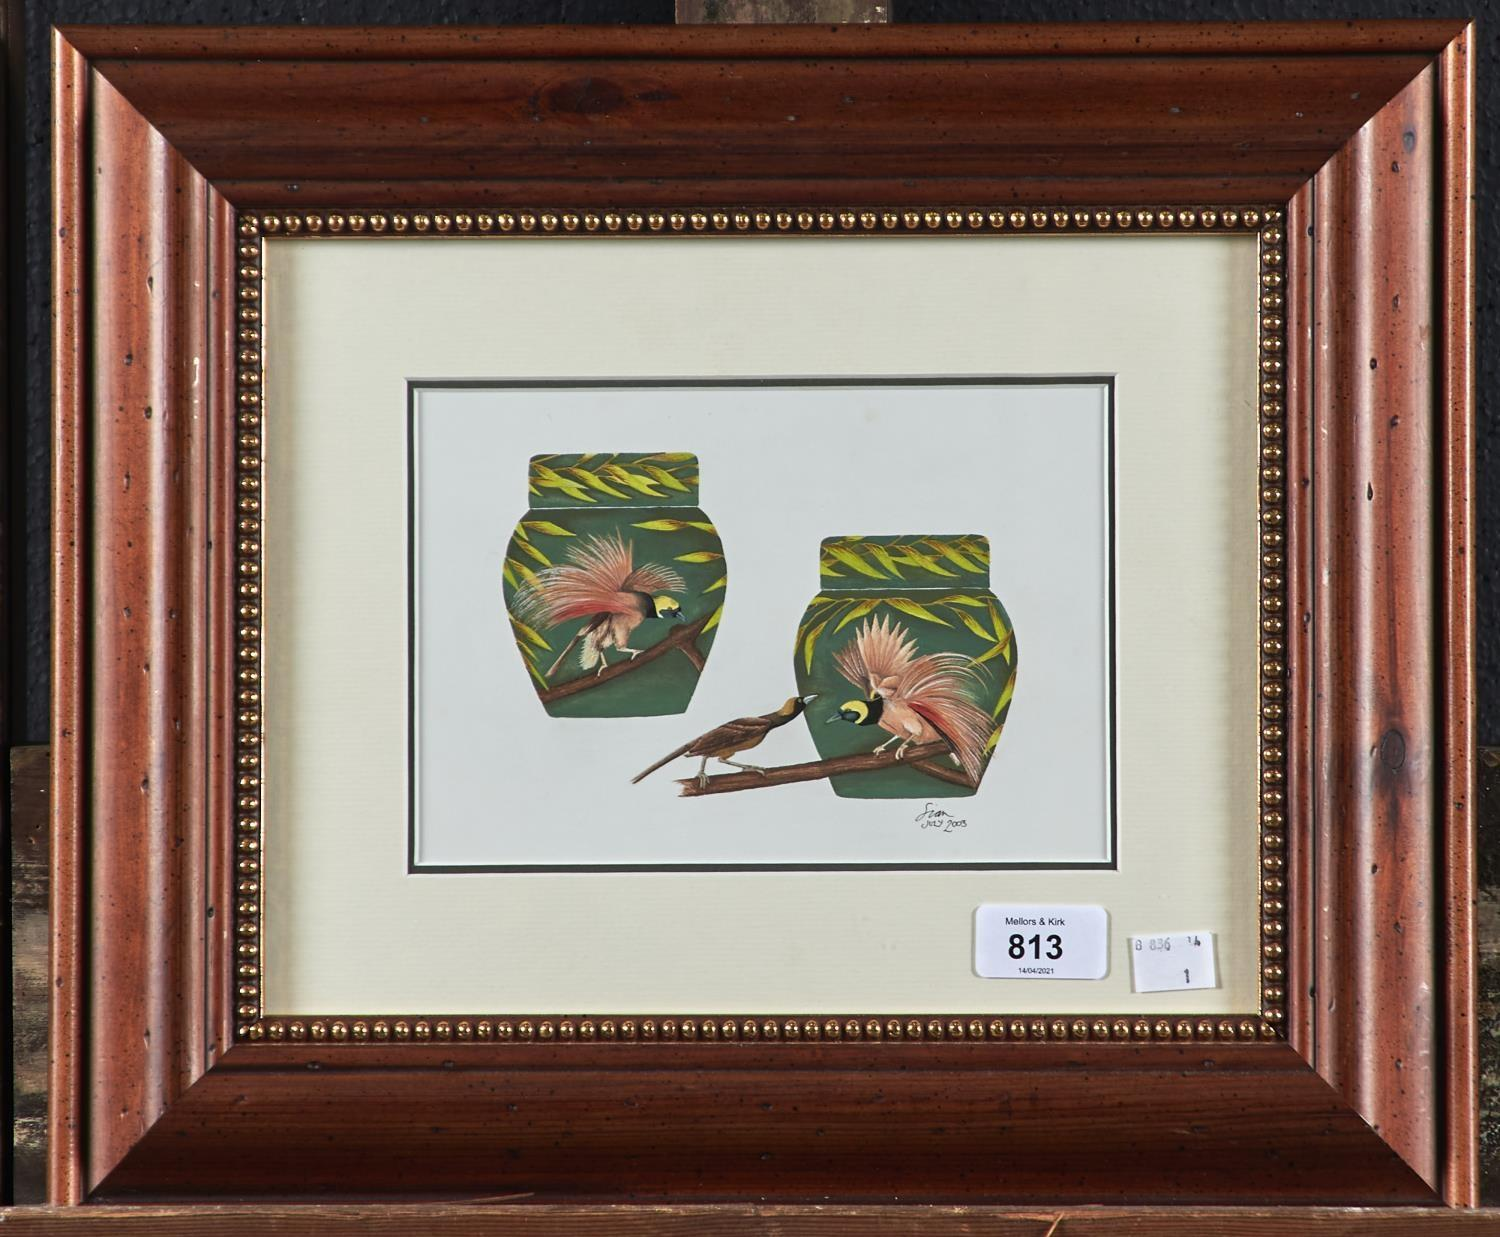 SIAN LEEPER - BIRD OF PARADISE, DESIGN FOR MOORCROFT, SIGNED AND DATED JULY 2003, GOUACHE, 14 X 20CM - Image 2 of 2